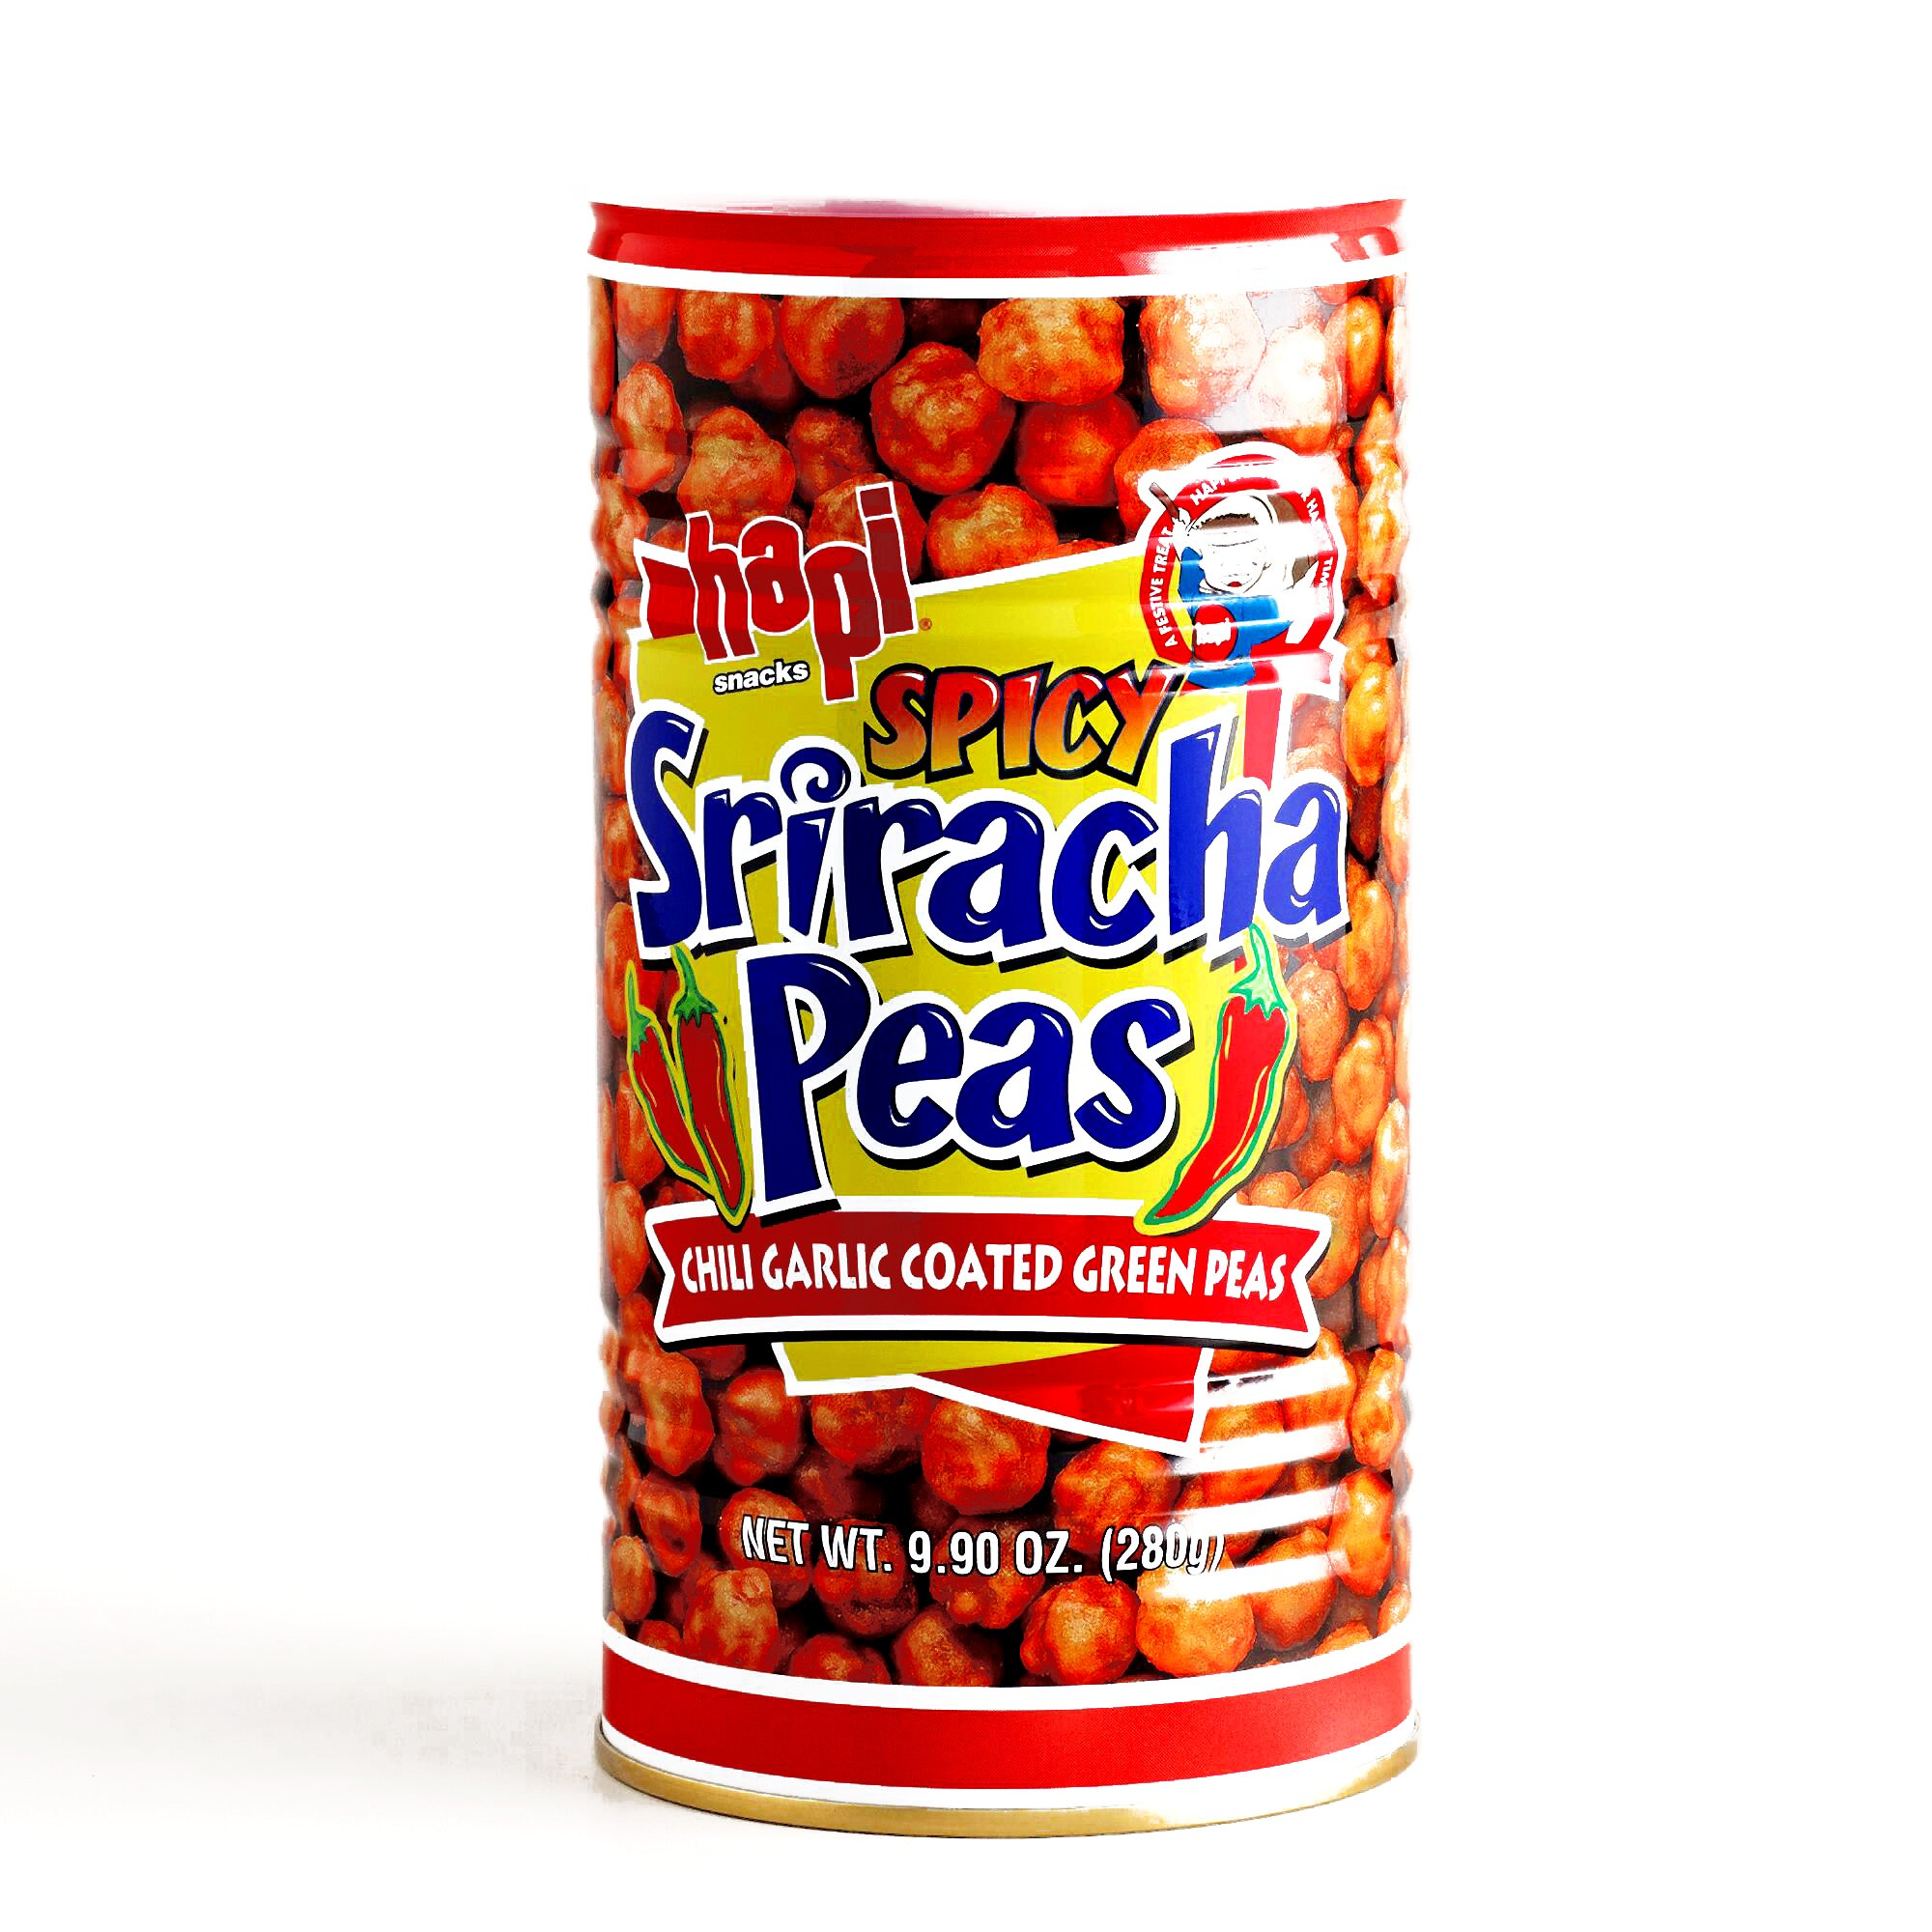 Hapi Spicy Sriracha Peas 9.9 oz each (6 Items Per Order) by Hapi Spicy